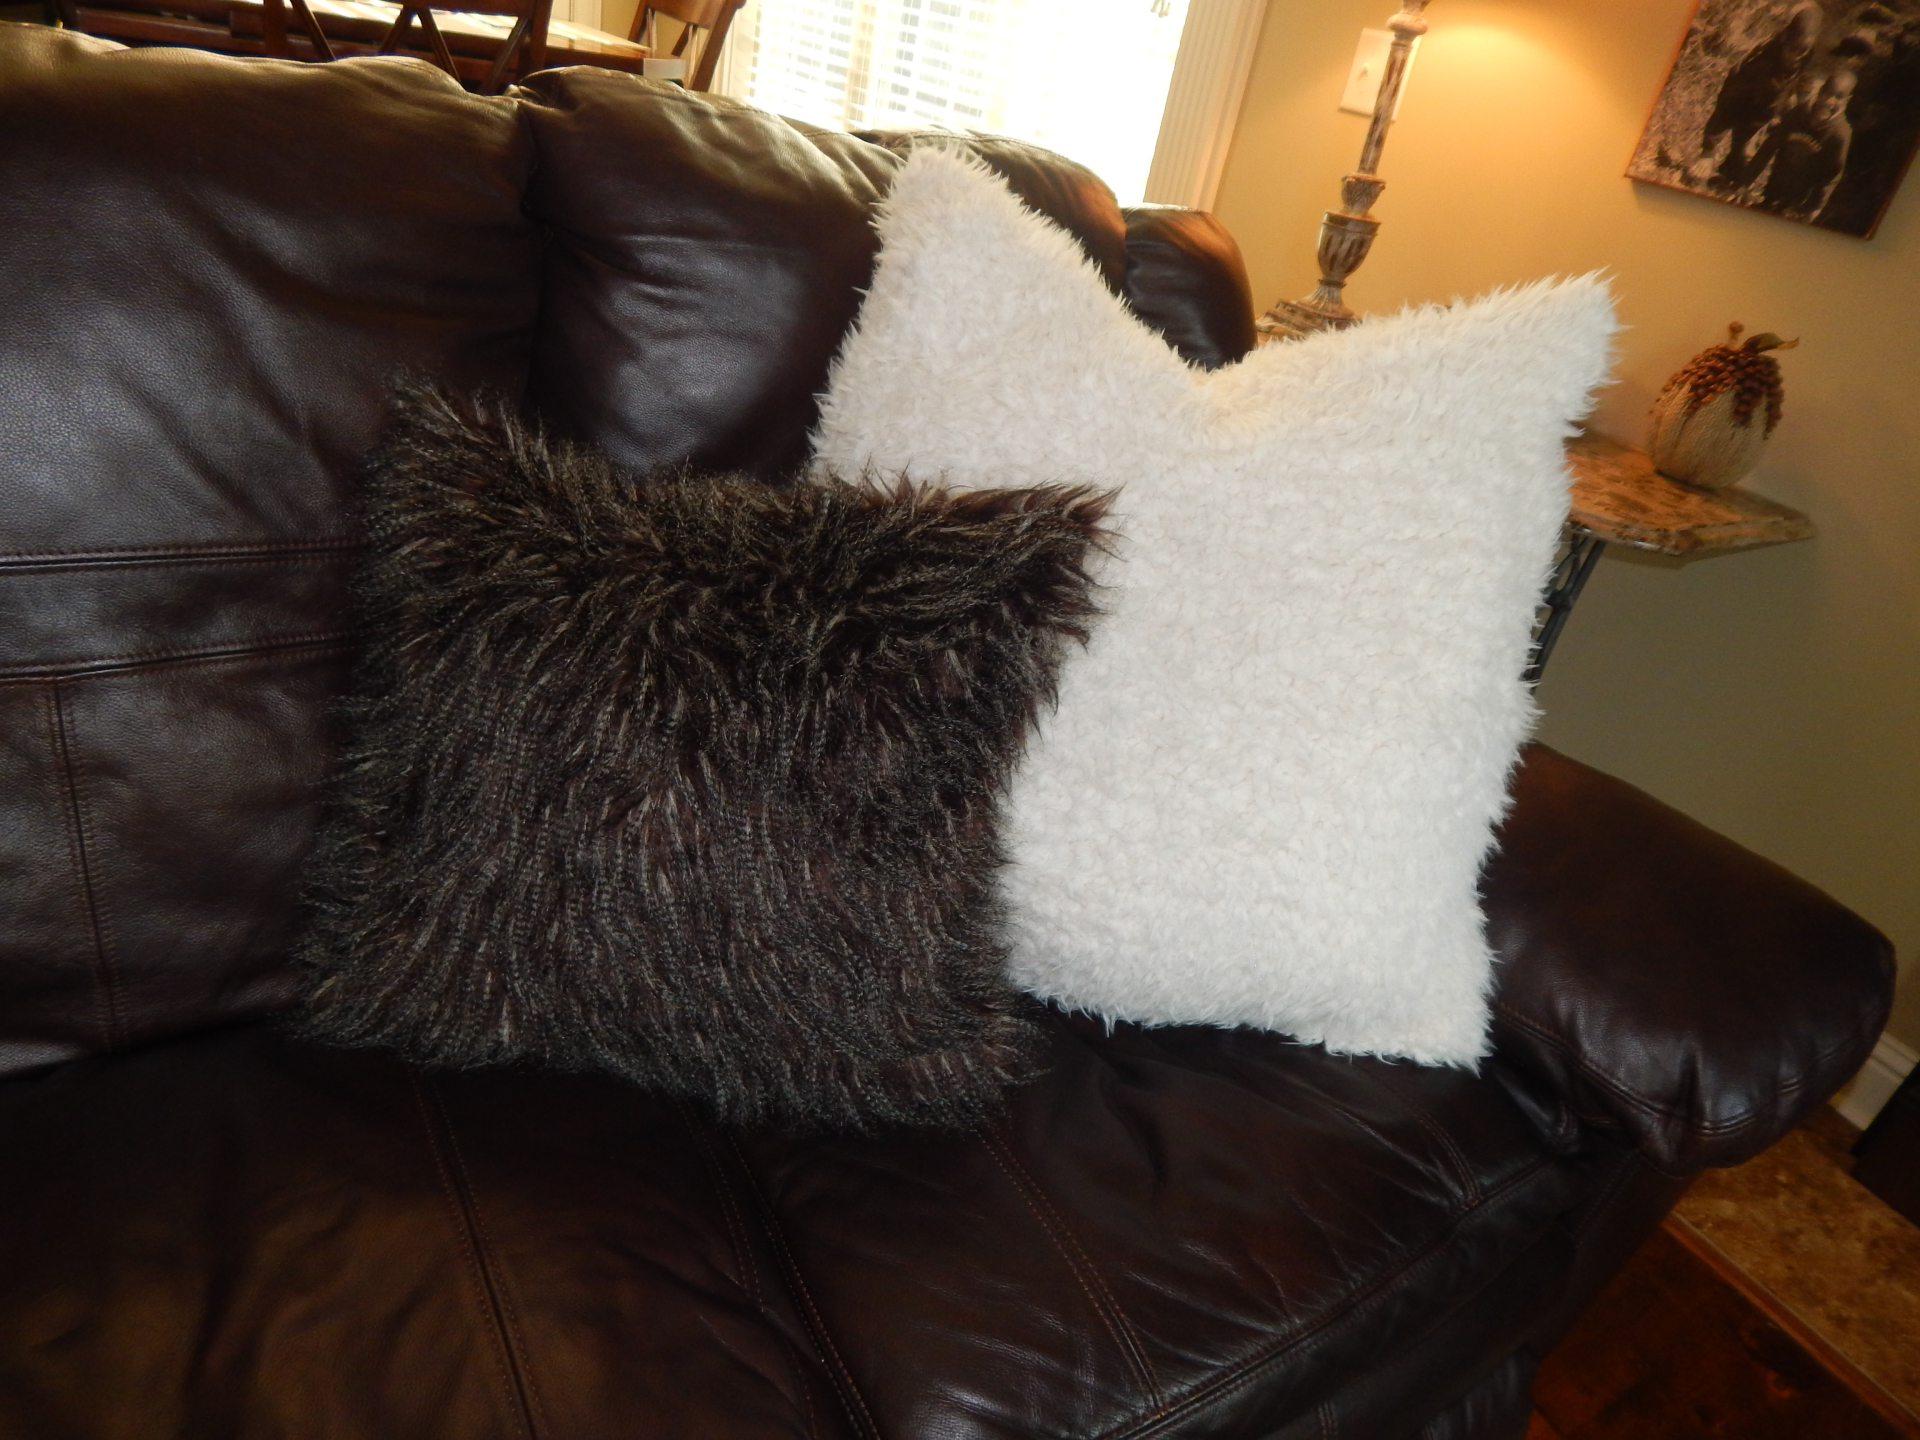 Recycle Your Decorative Pillows This Fall